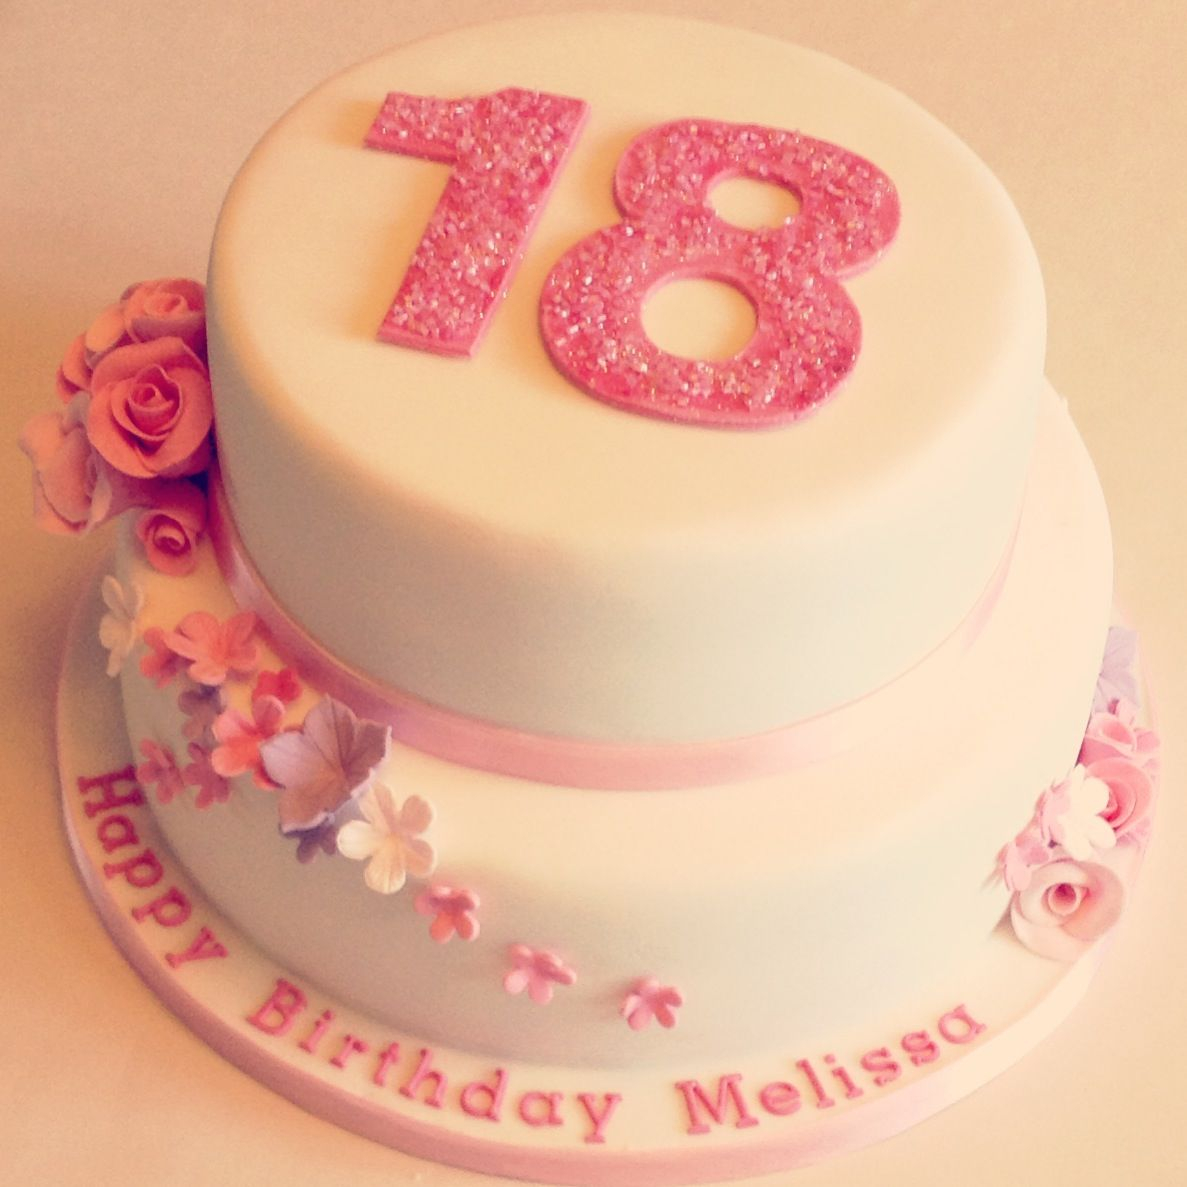 18Th Birthday Cake Designs Floral 18th Birthday Cakes Make The Pink A Mint Green And It Would